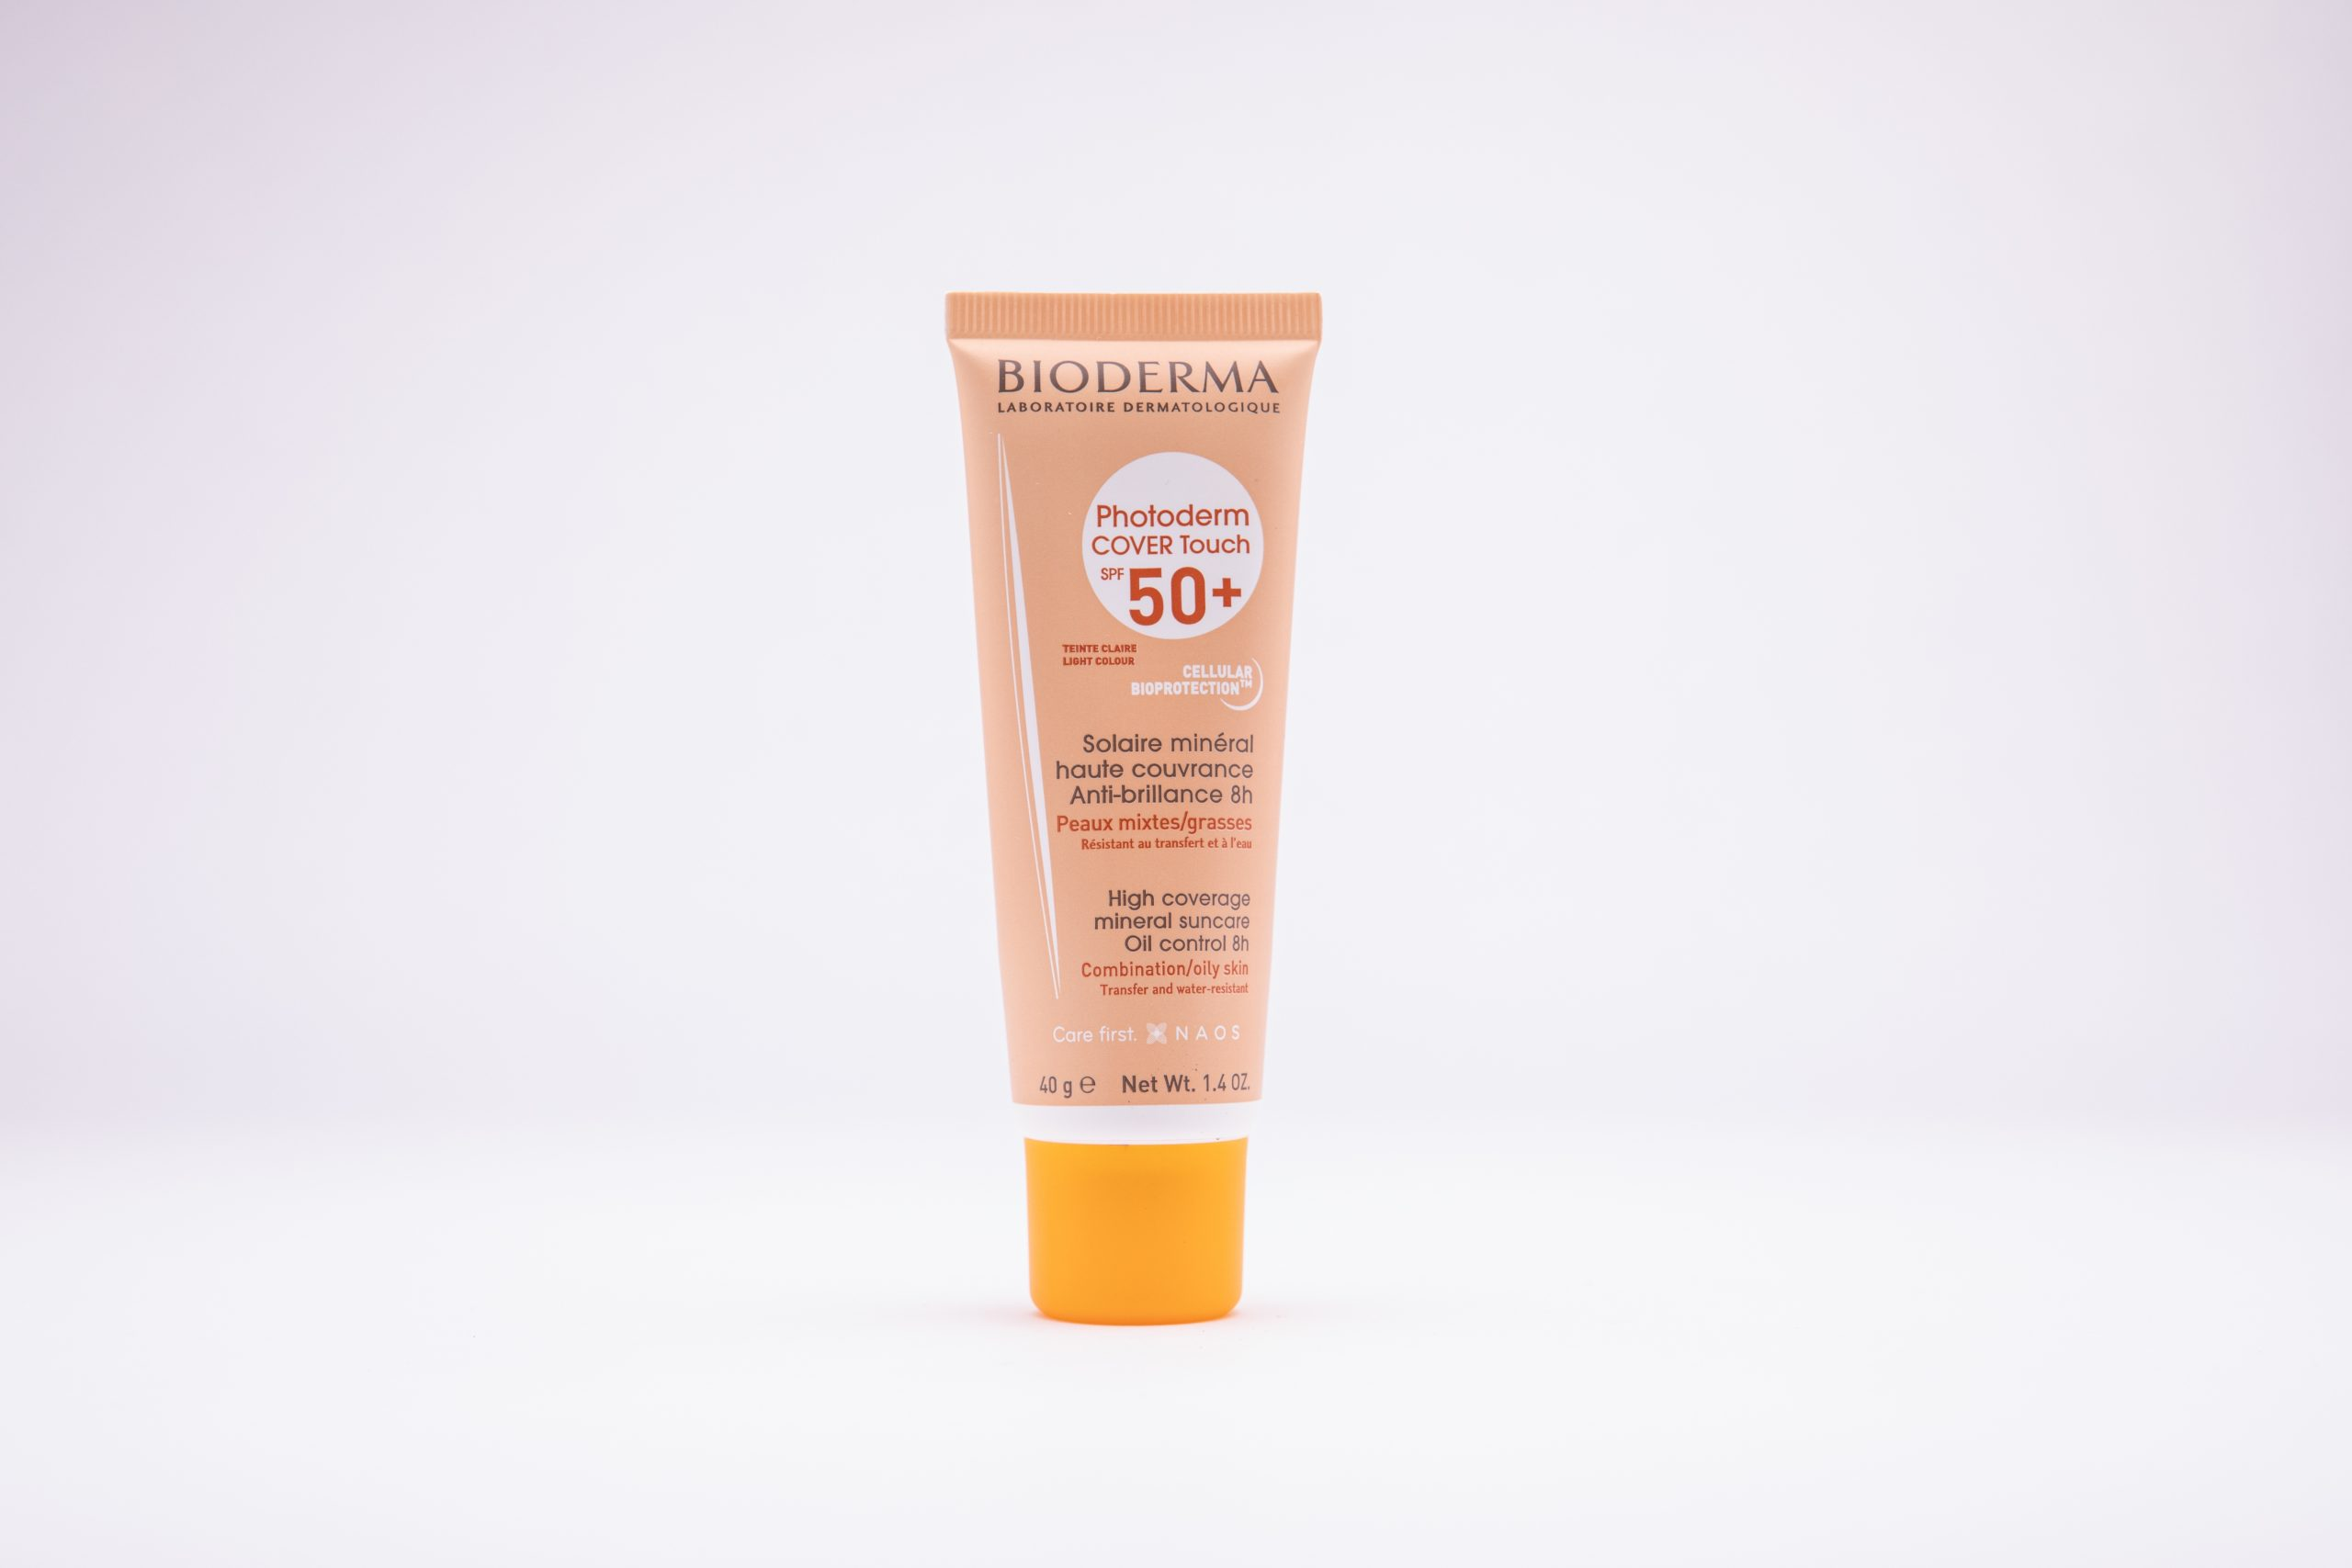 Bioderma Photoderm Cover Touch 50+